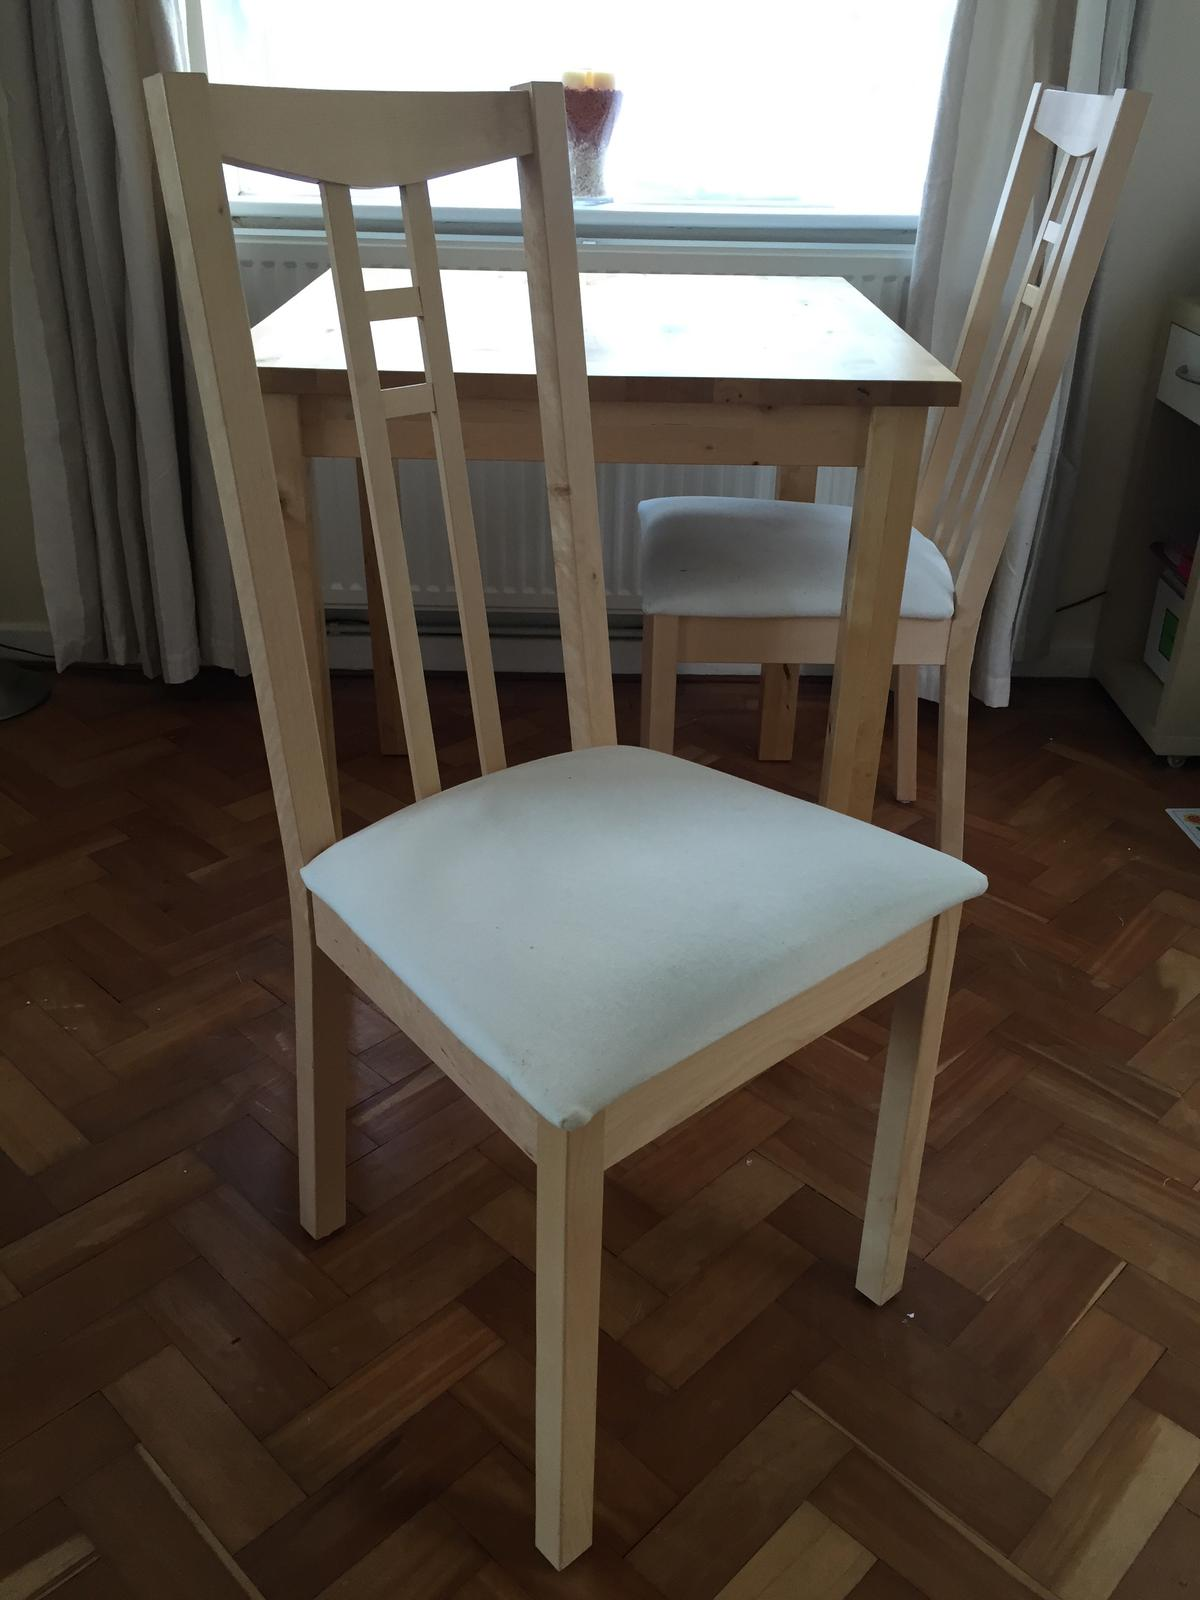 Description Excellent Condition Small Solid Wood Birch Dining Table From Ikea